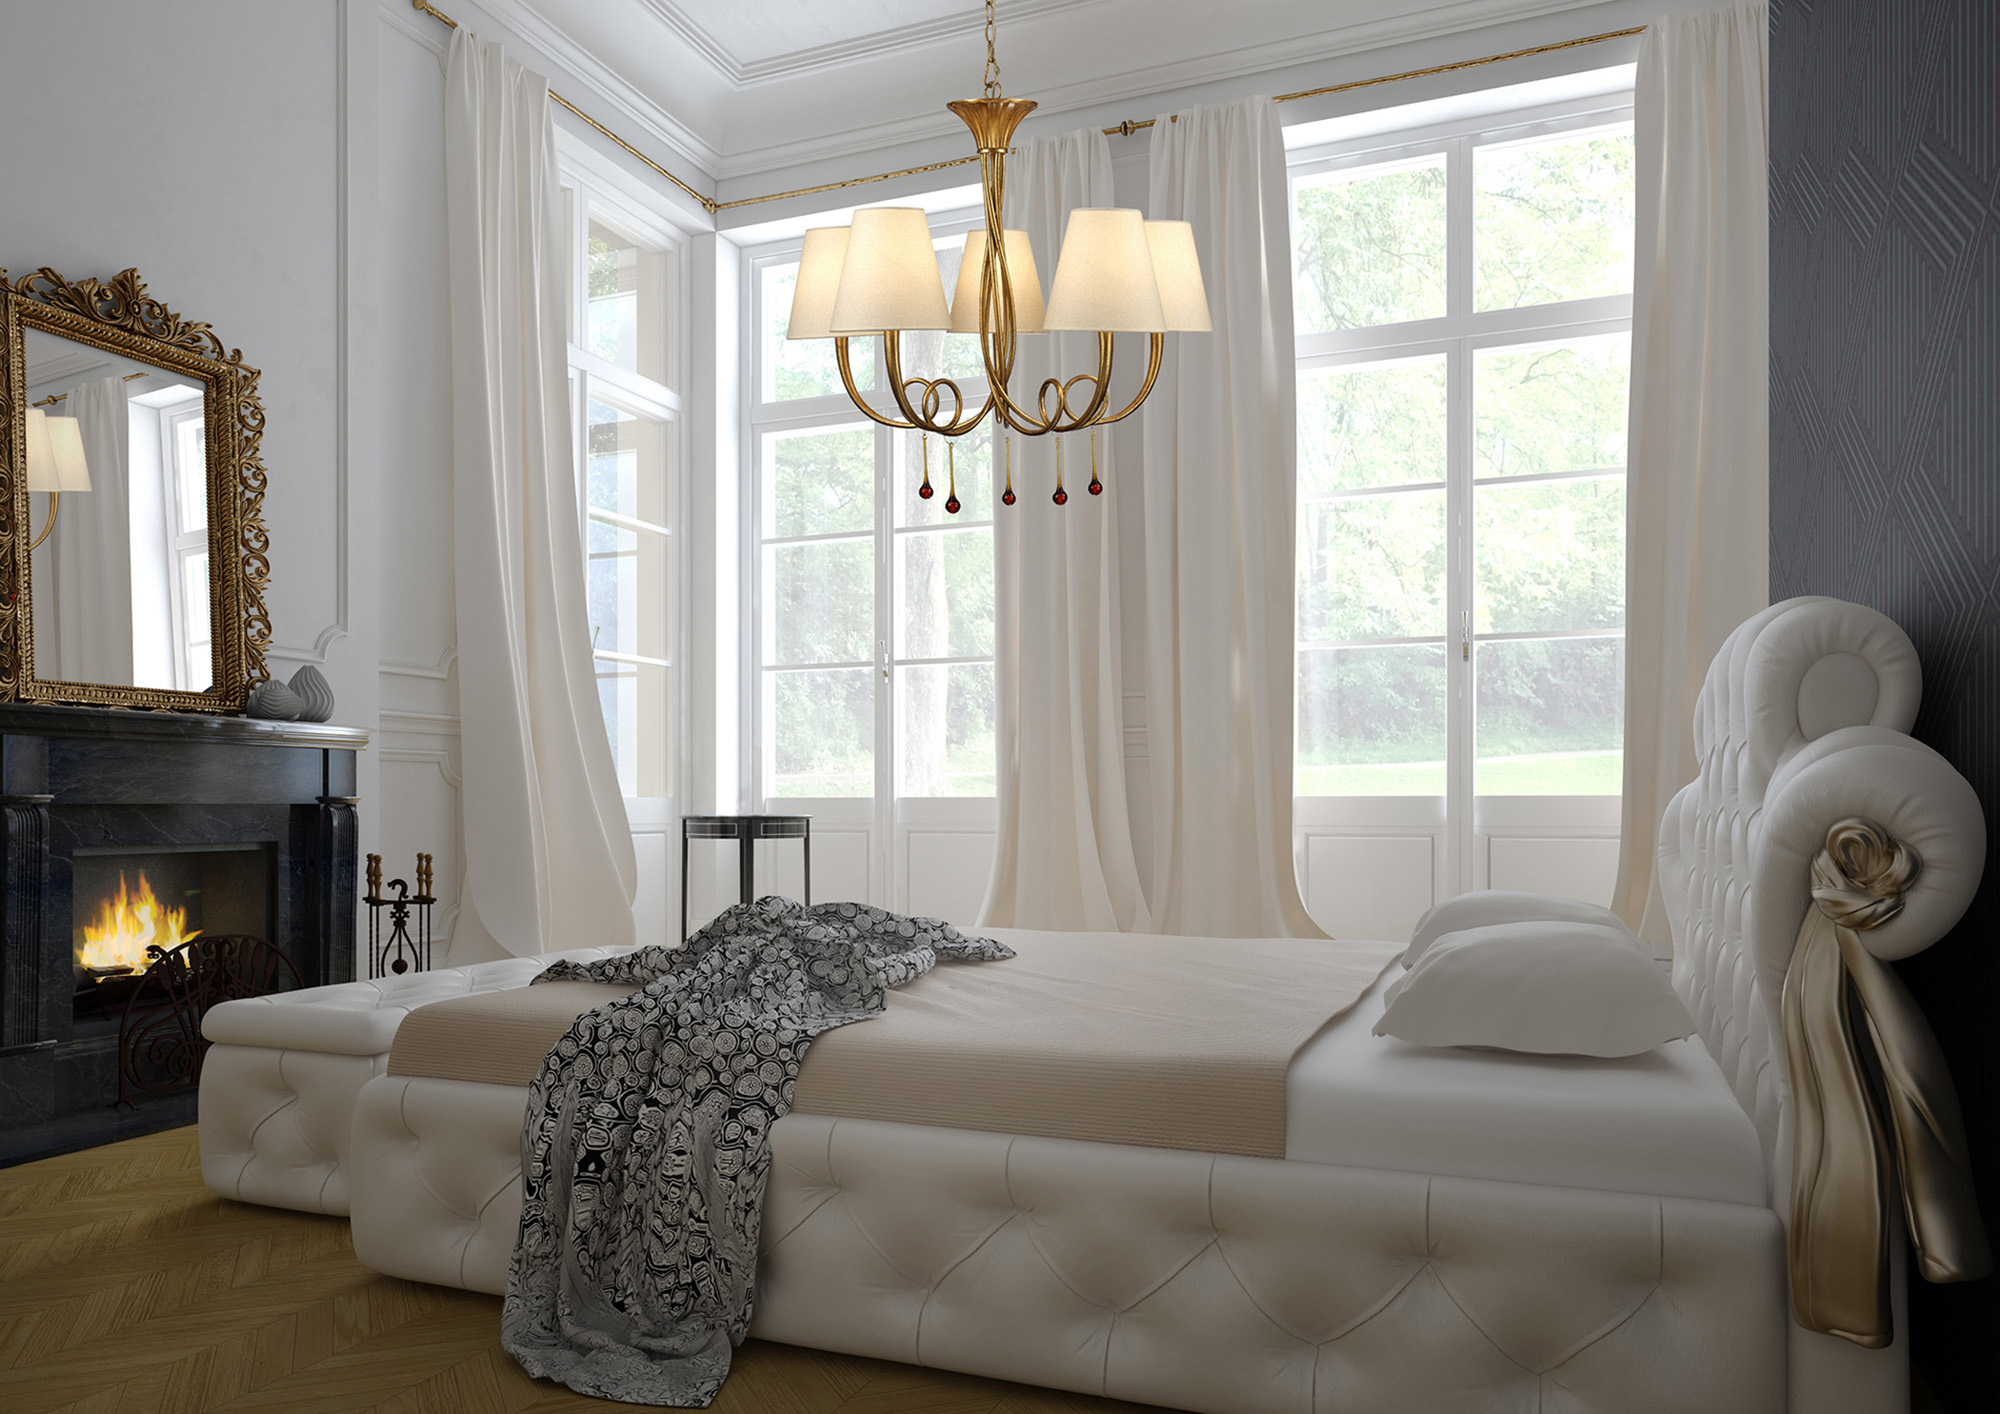 Paola Floor Lamps Mantra Traditional Floor Lamps